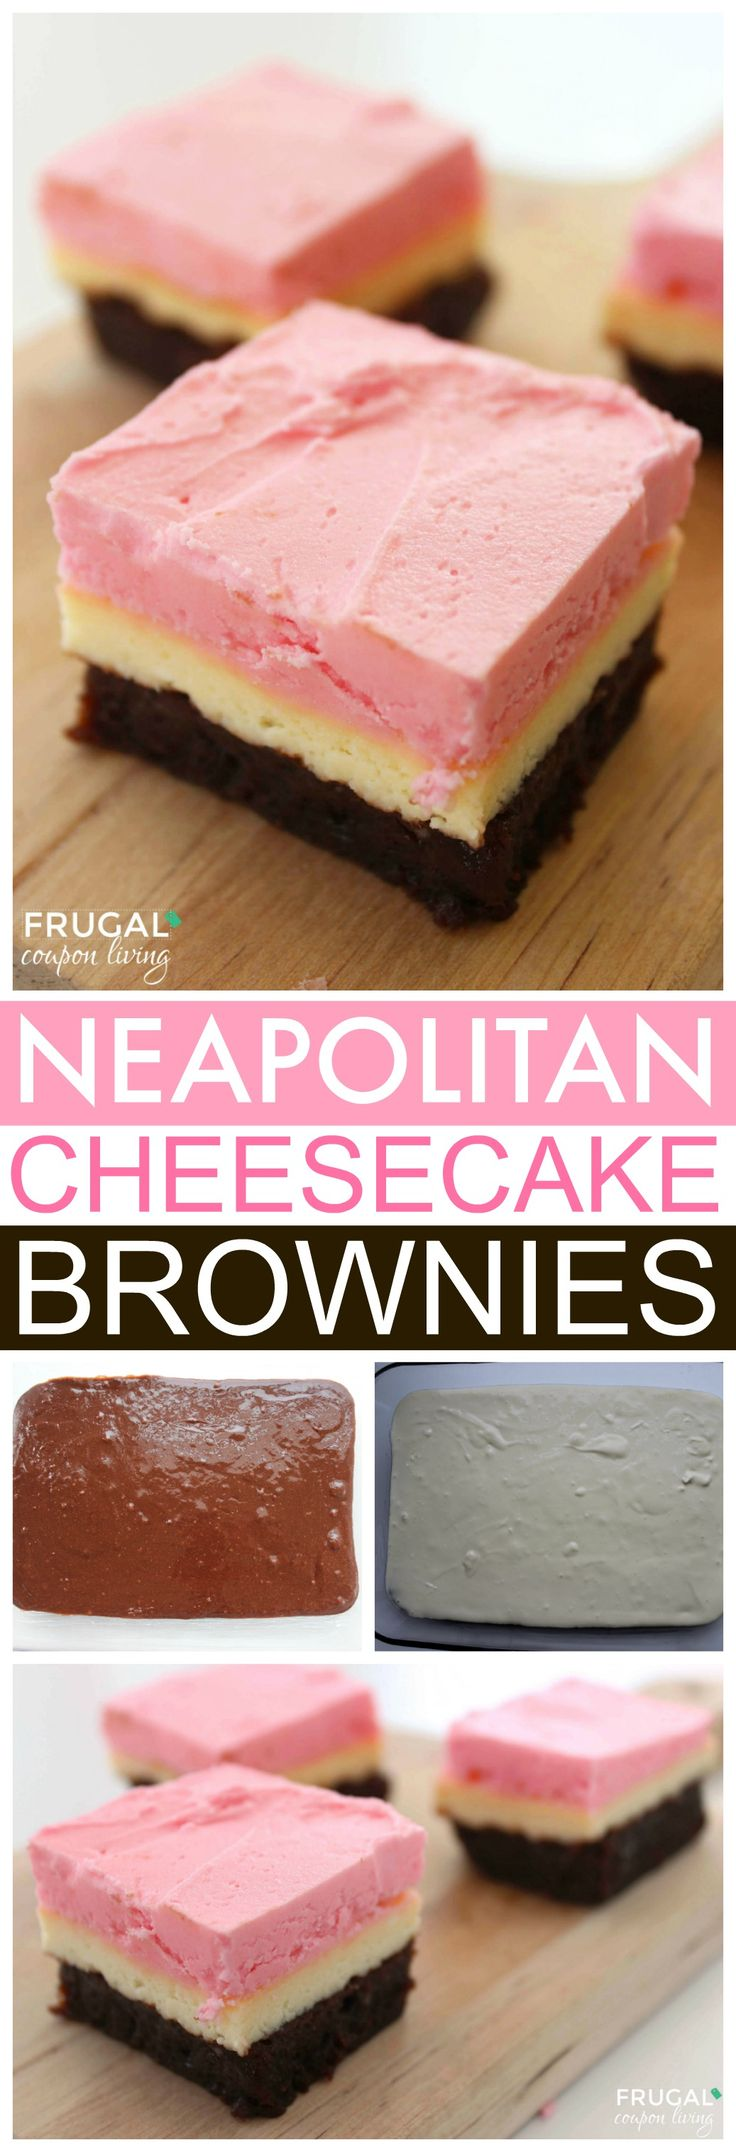 A brownie recipe, a cheesecake recipe or both? We love these Neapolitan Cheesecake Brownies - they are so yummy and a rather simple dessert recipe!